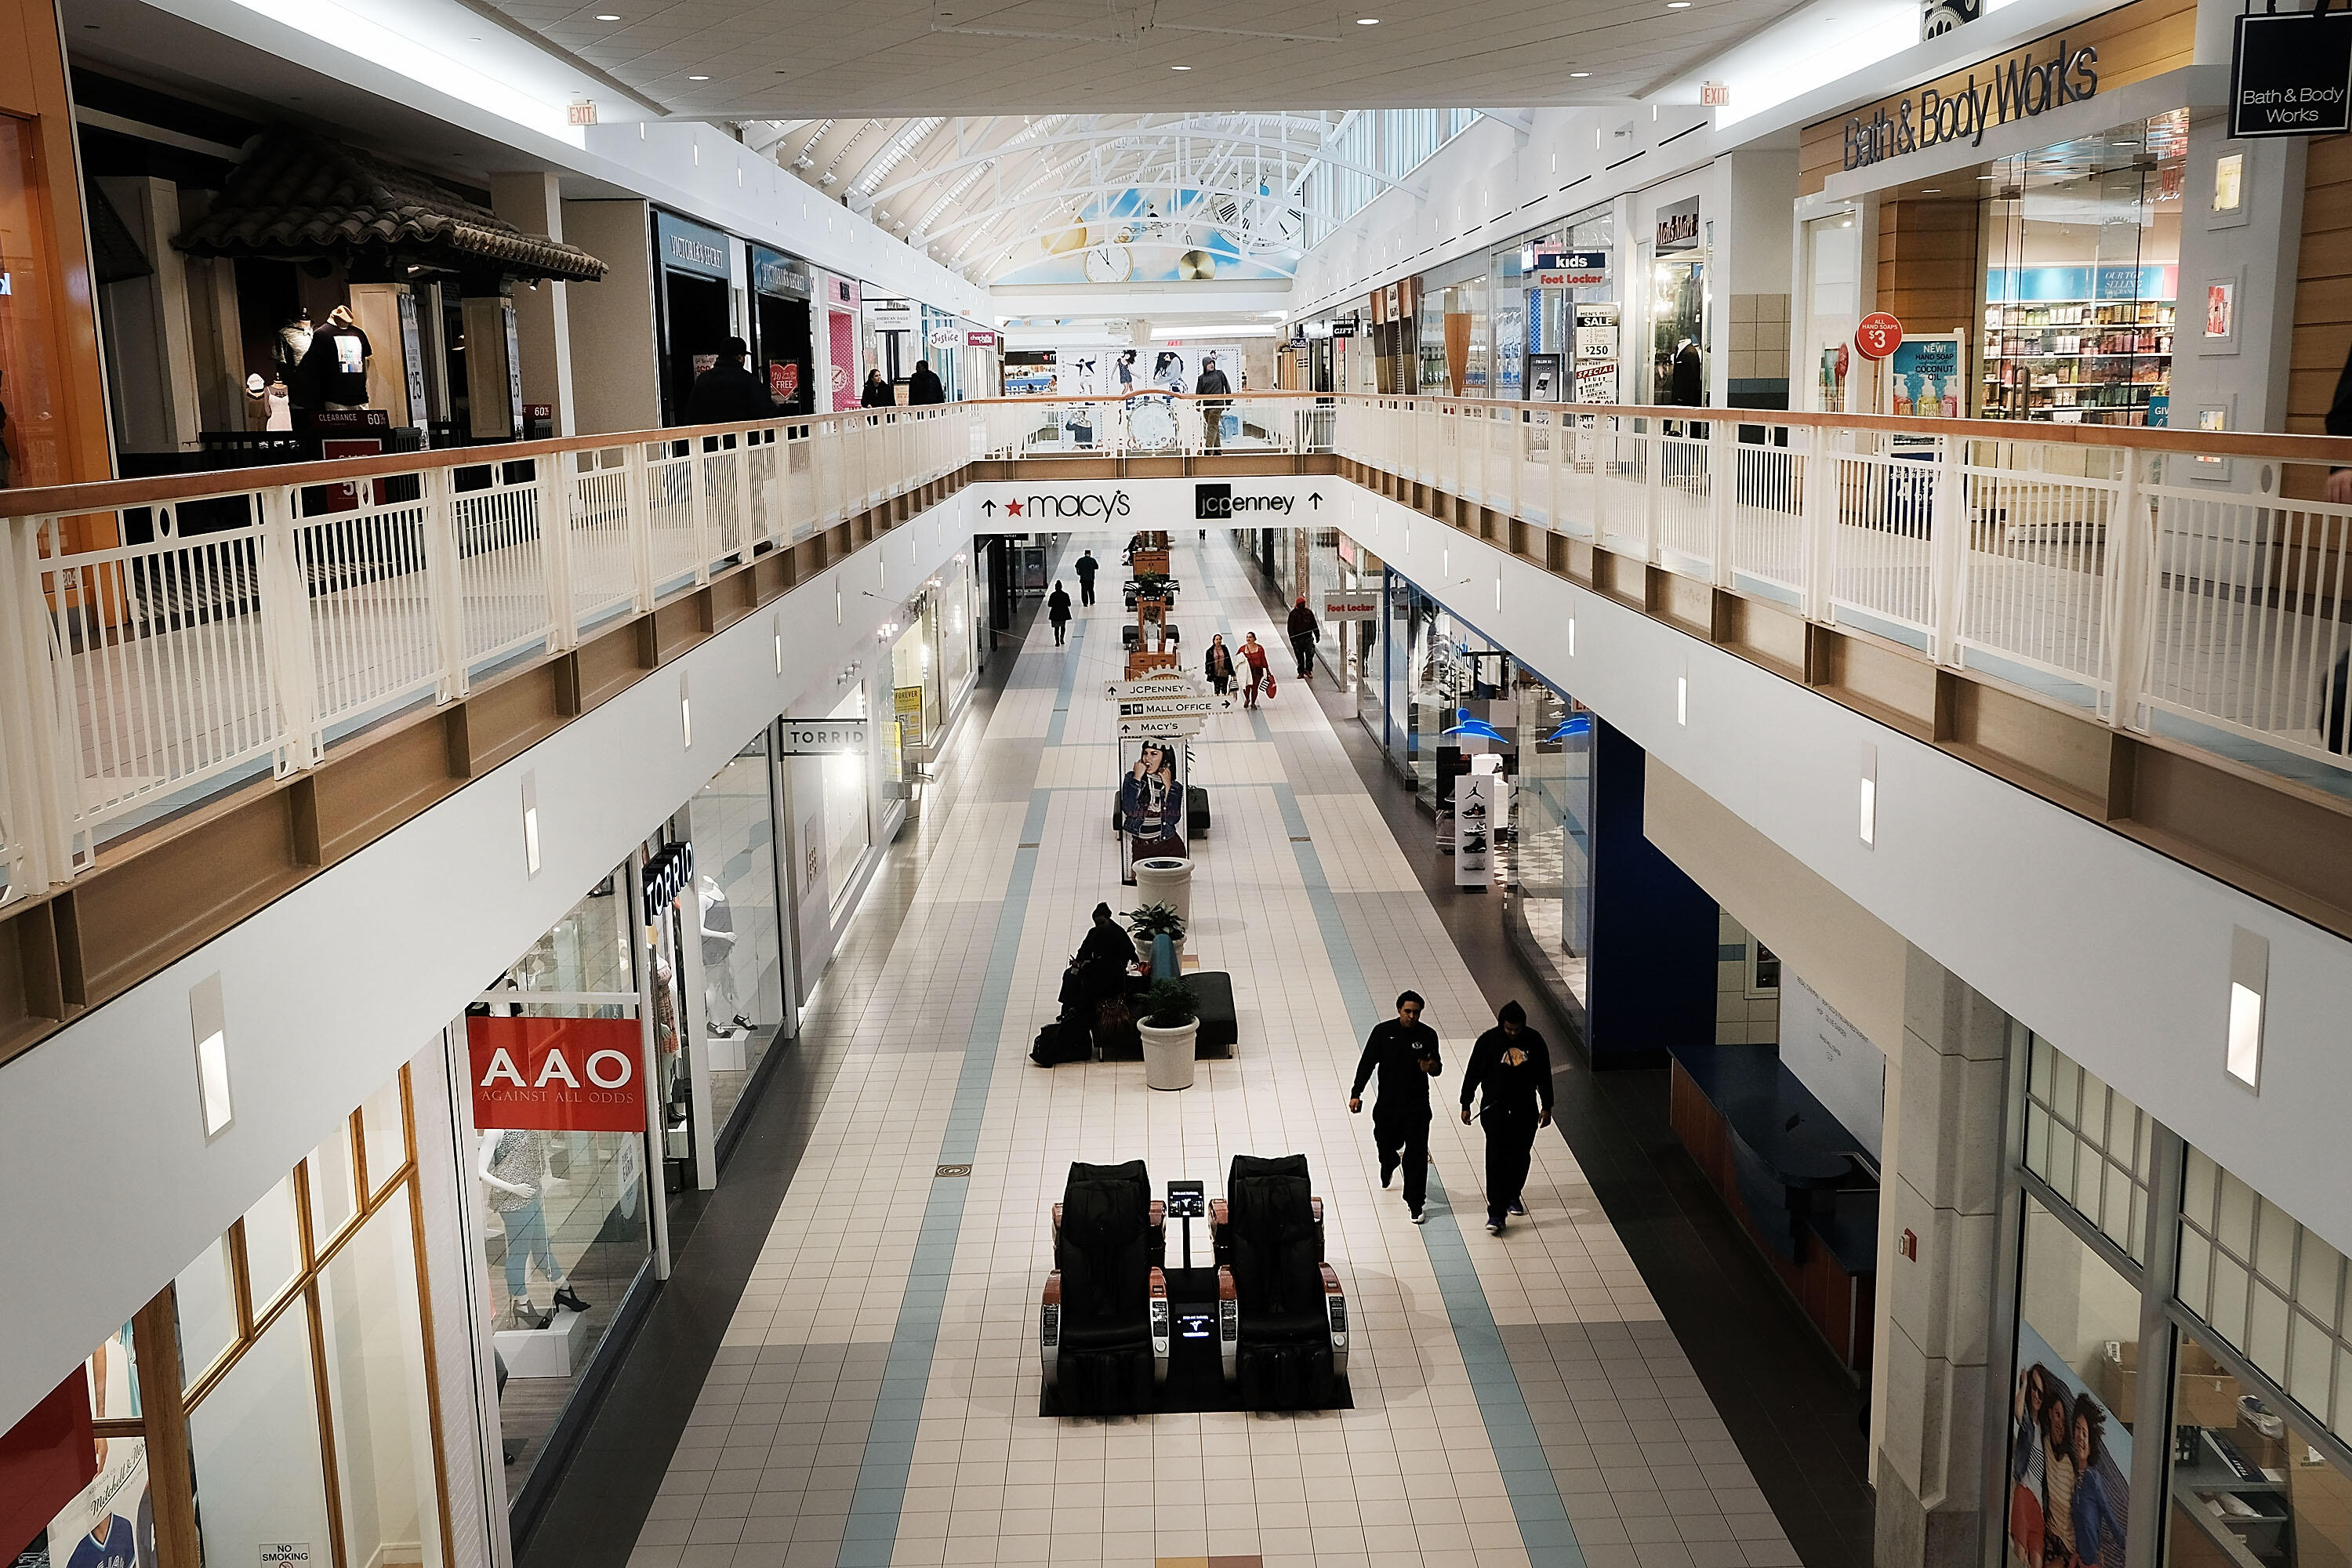 WATERBURY, CT - MARCH 28: People walk through a nearly empty shopping mall on March 28, 2017 in Waterbury, Connecticut. As consumers buying habits change and more people prefer to spend money on technology and experiences like vacations over apparel, shop